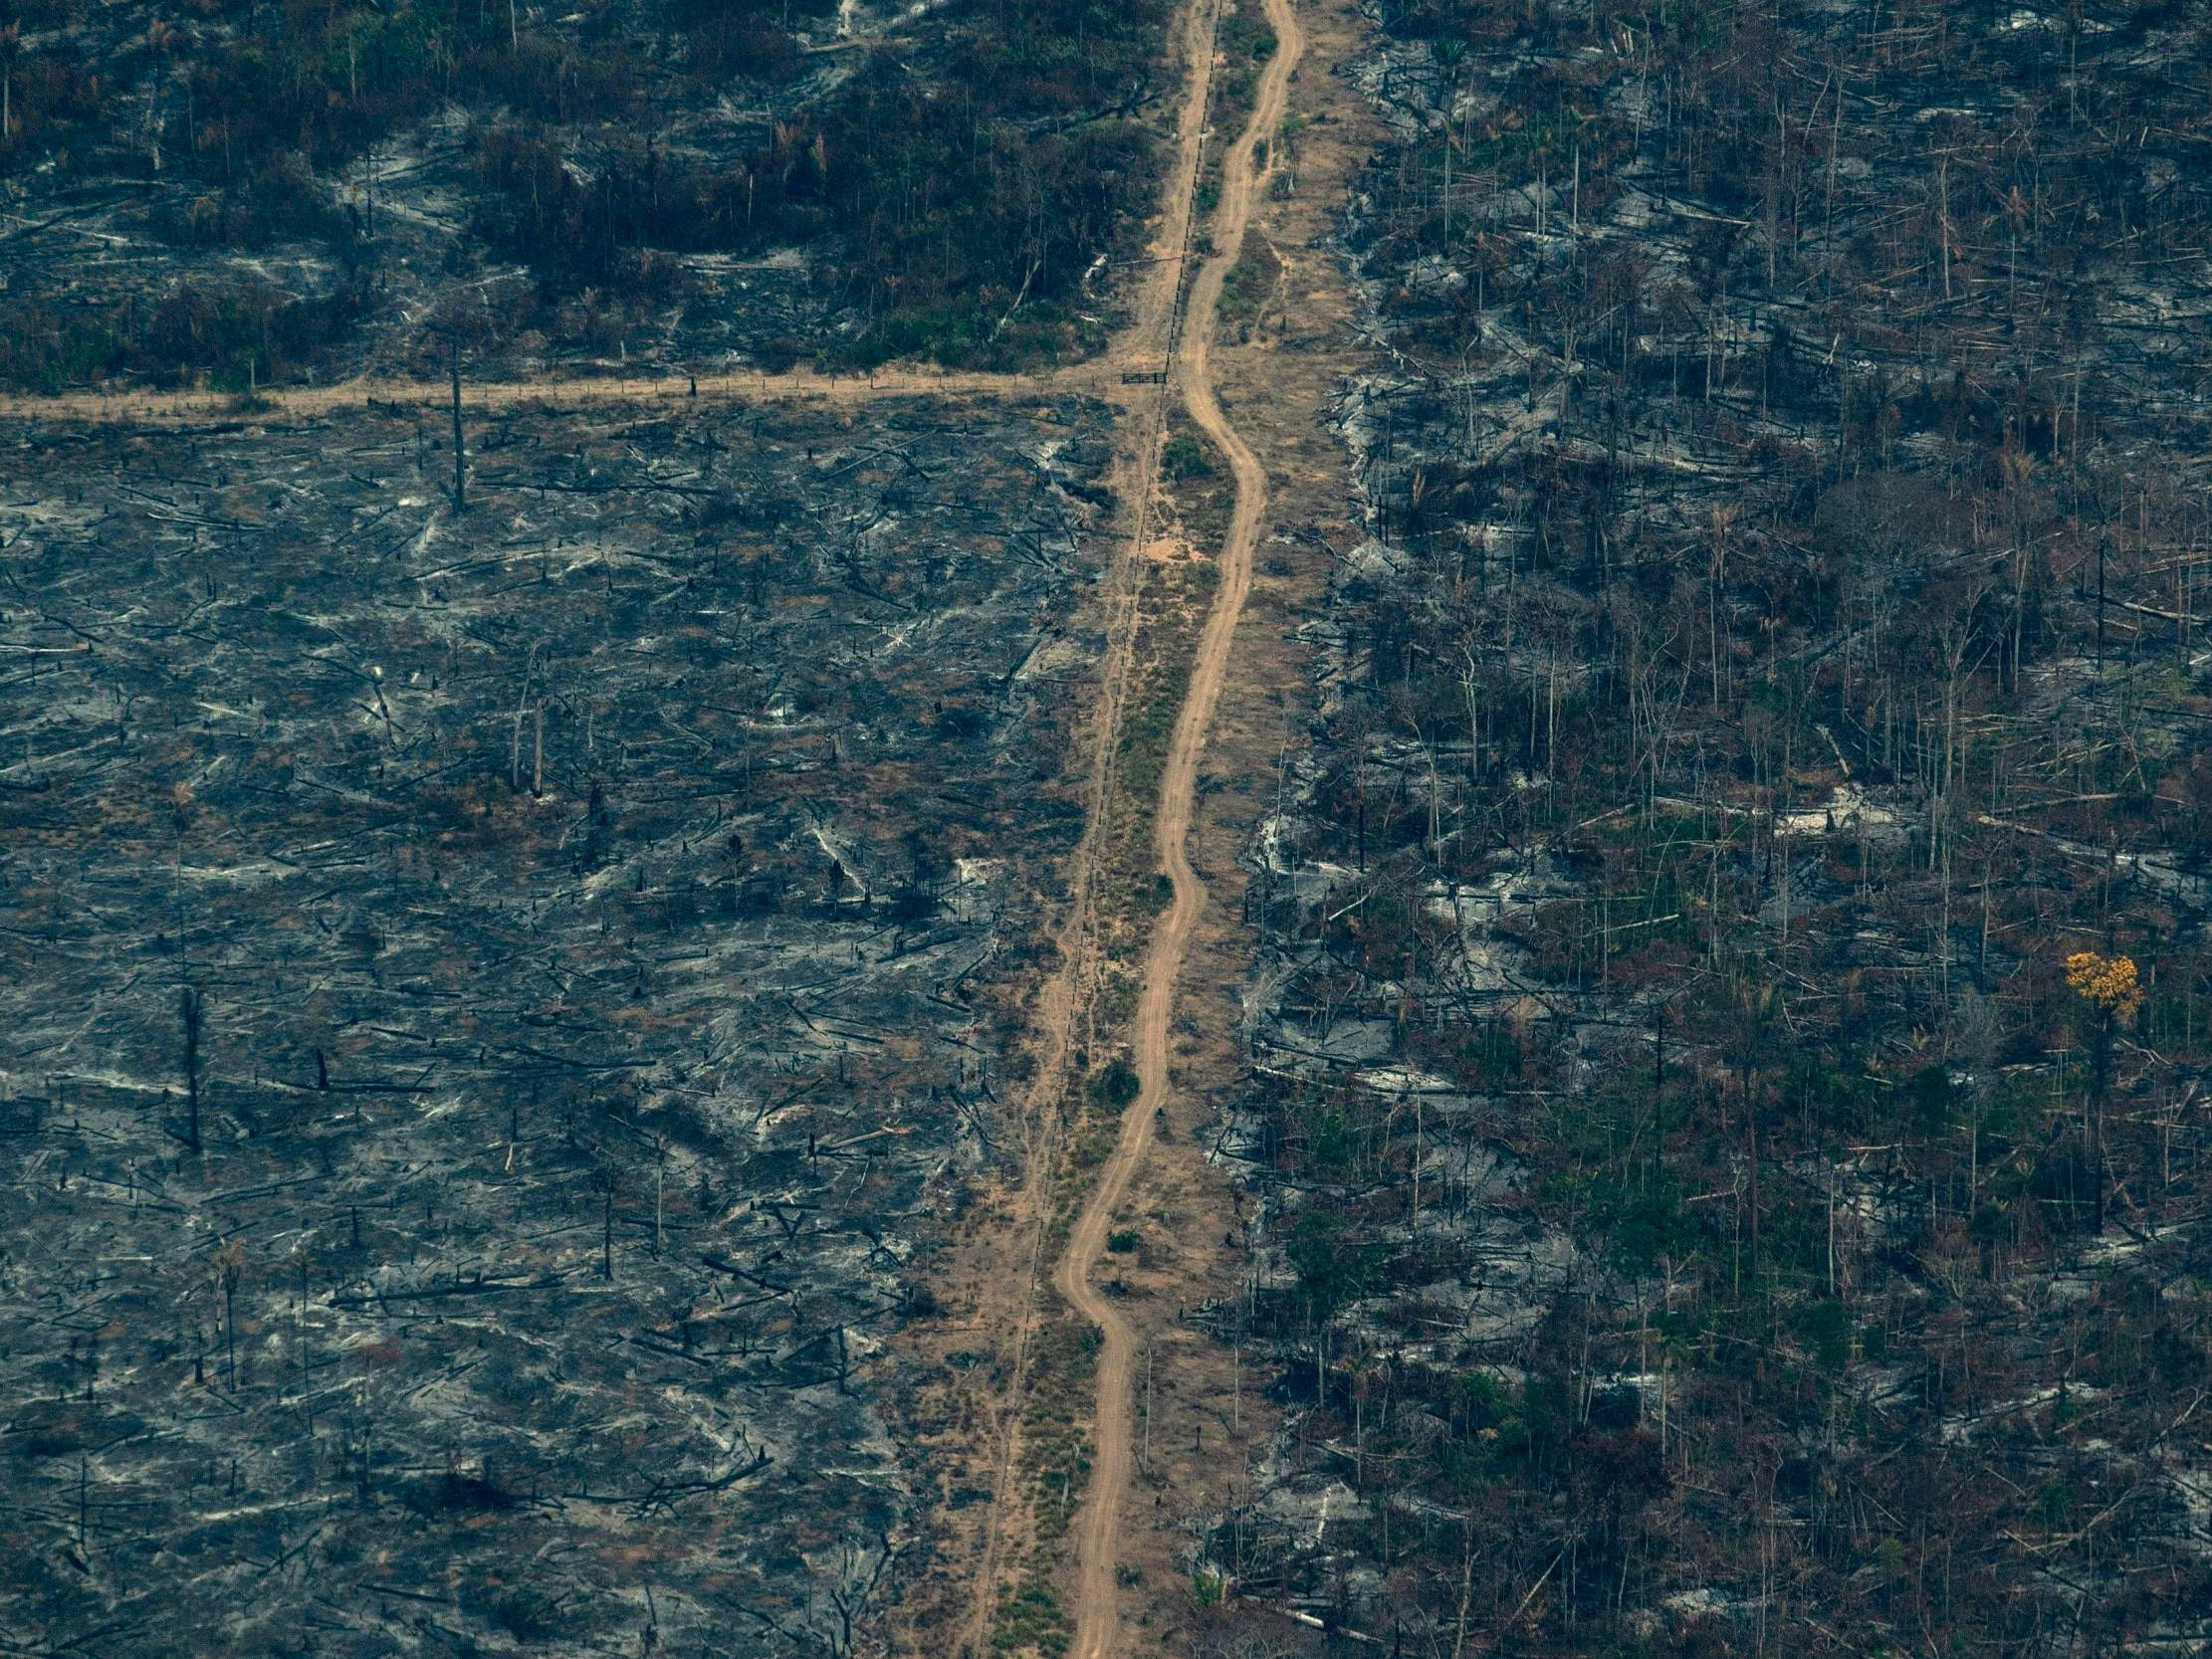 The Amazon rainforest is burning, but it is food price